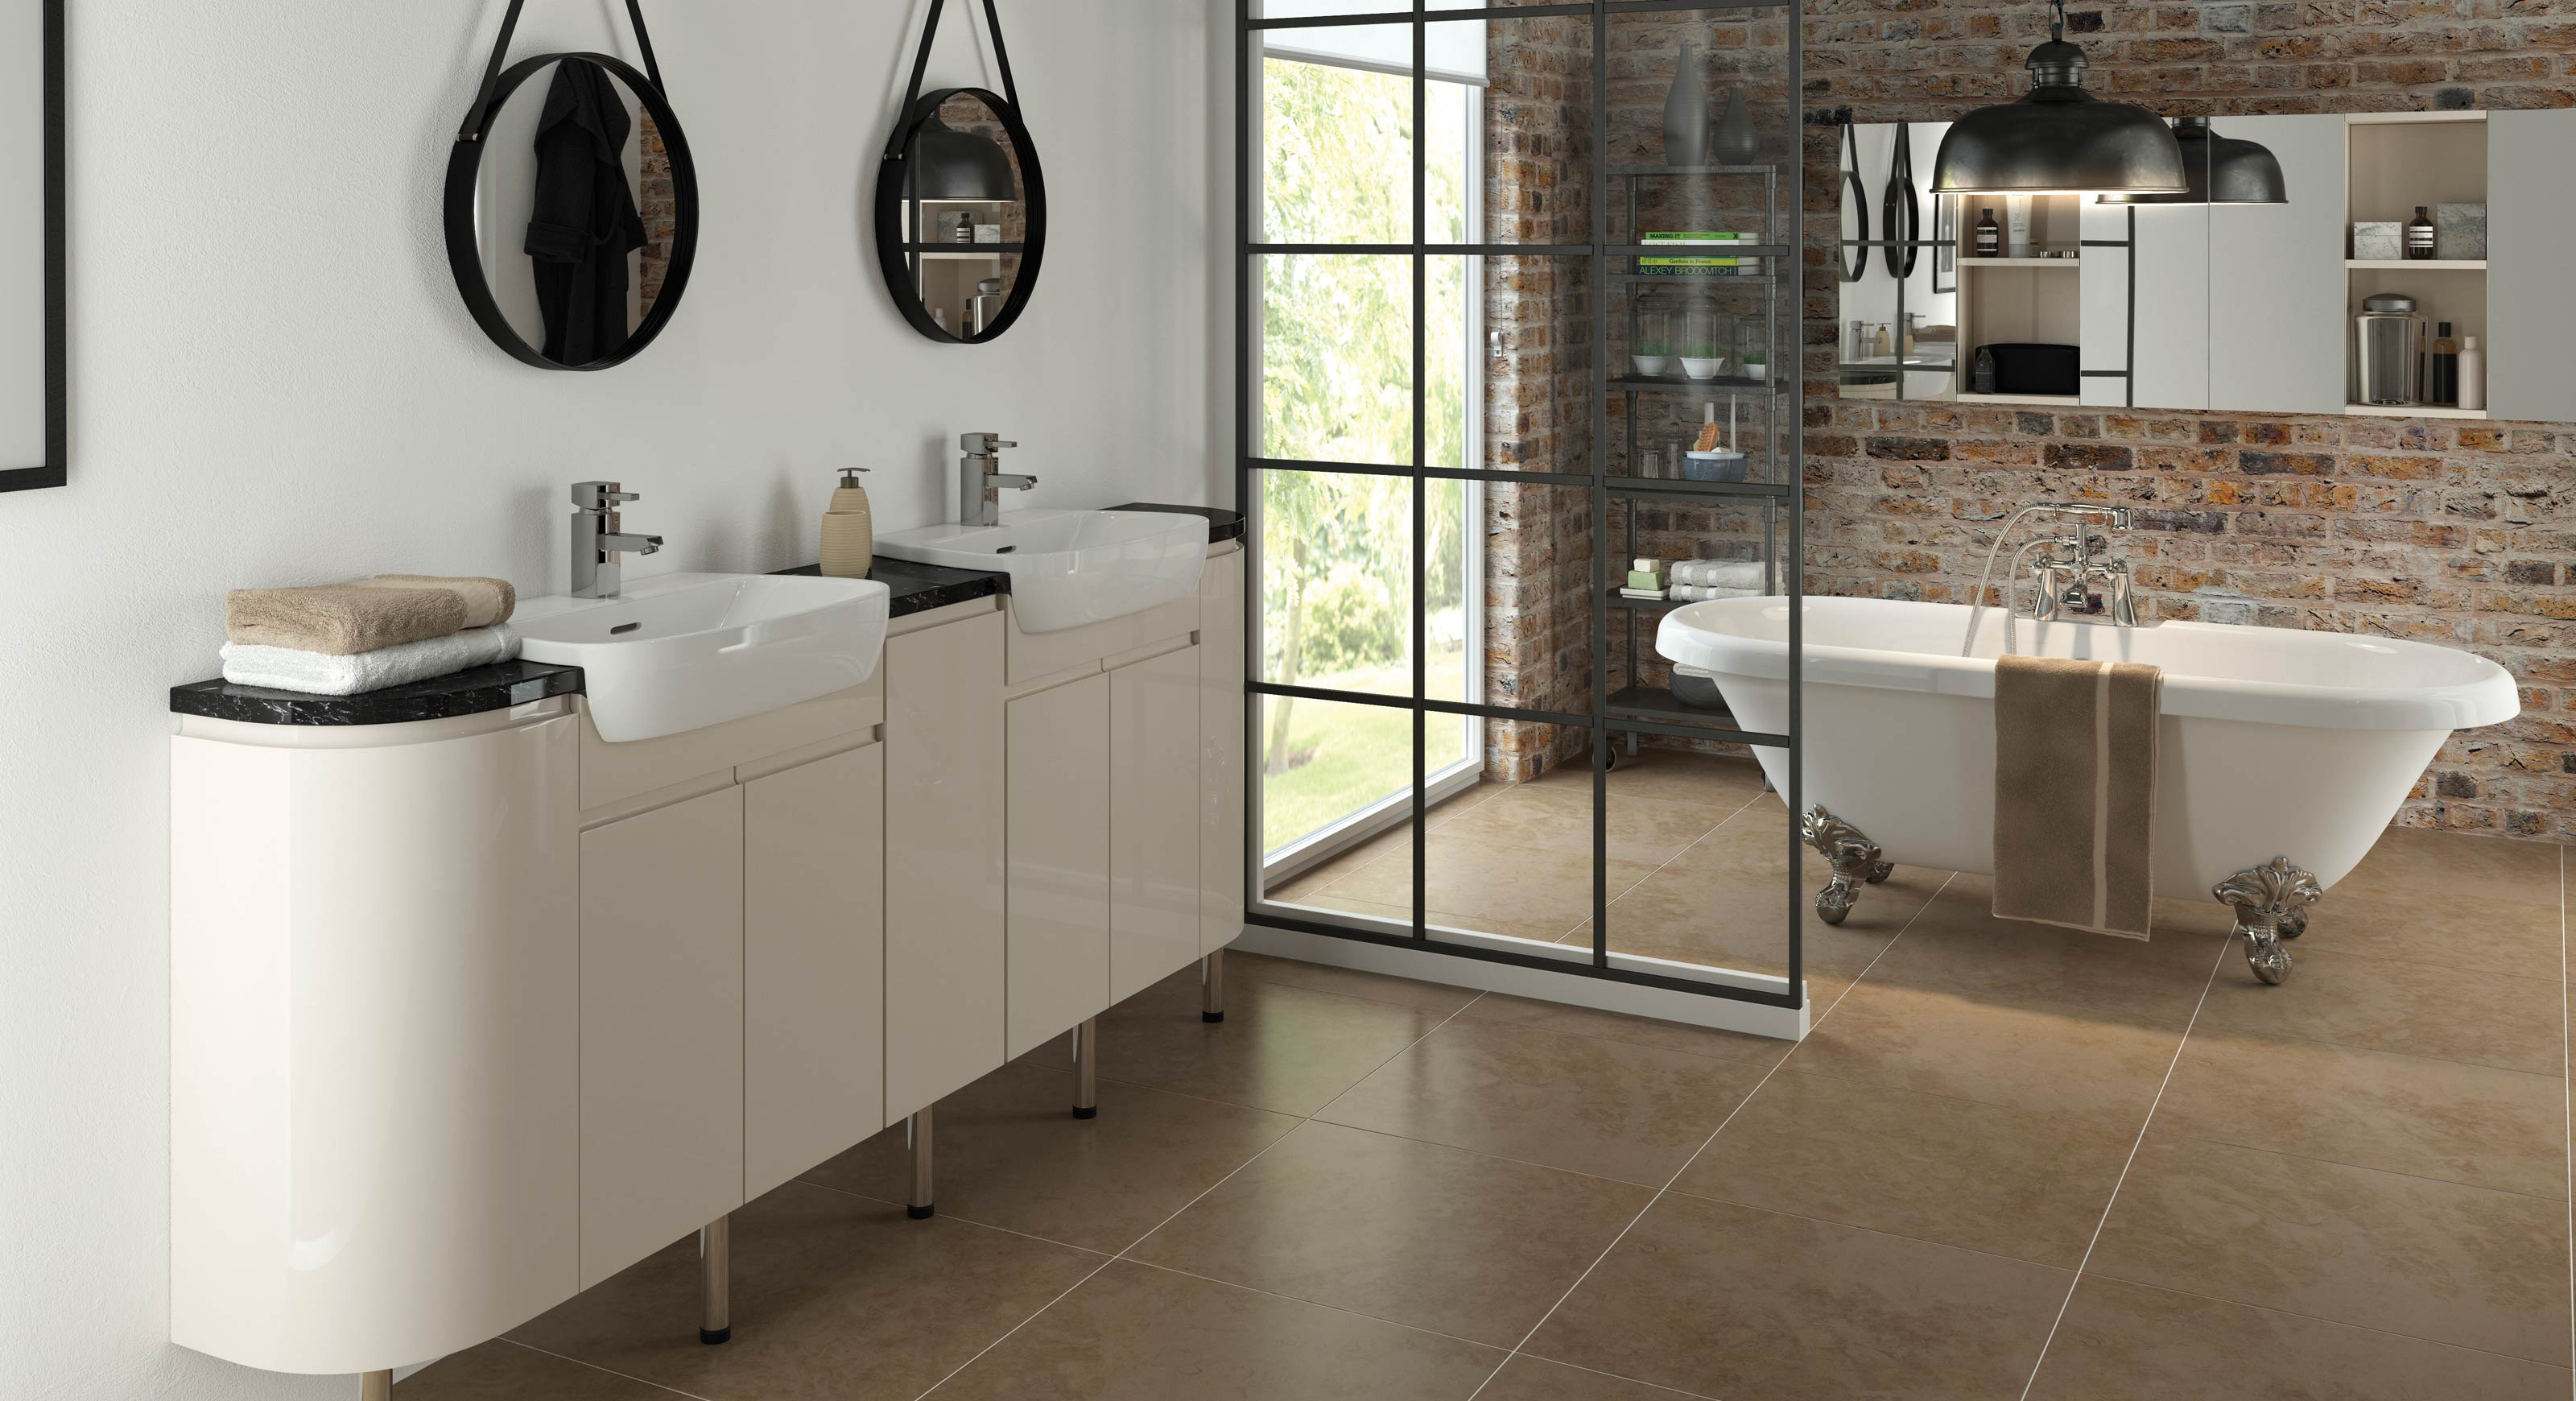 Bathrooms To Love Fresco Contemporary within sizing 3200 X 1740